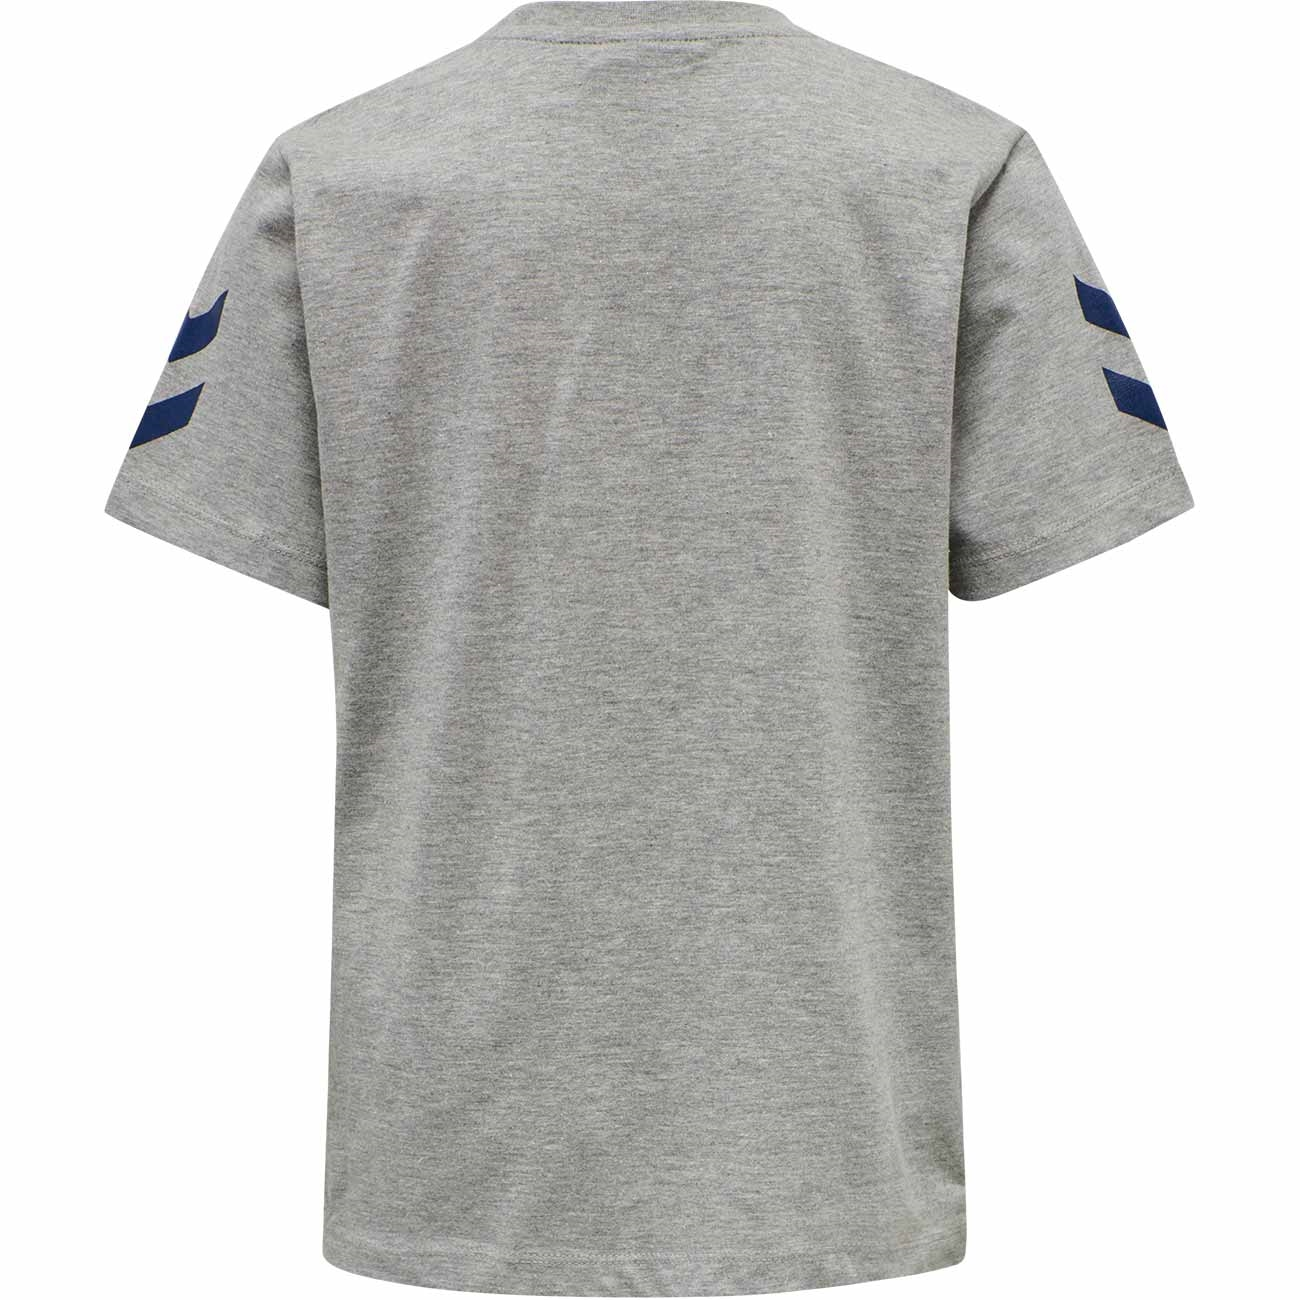 hummel-t-shirt-shocker-grey-melange-graa-logo